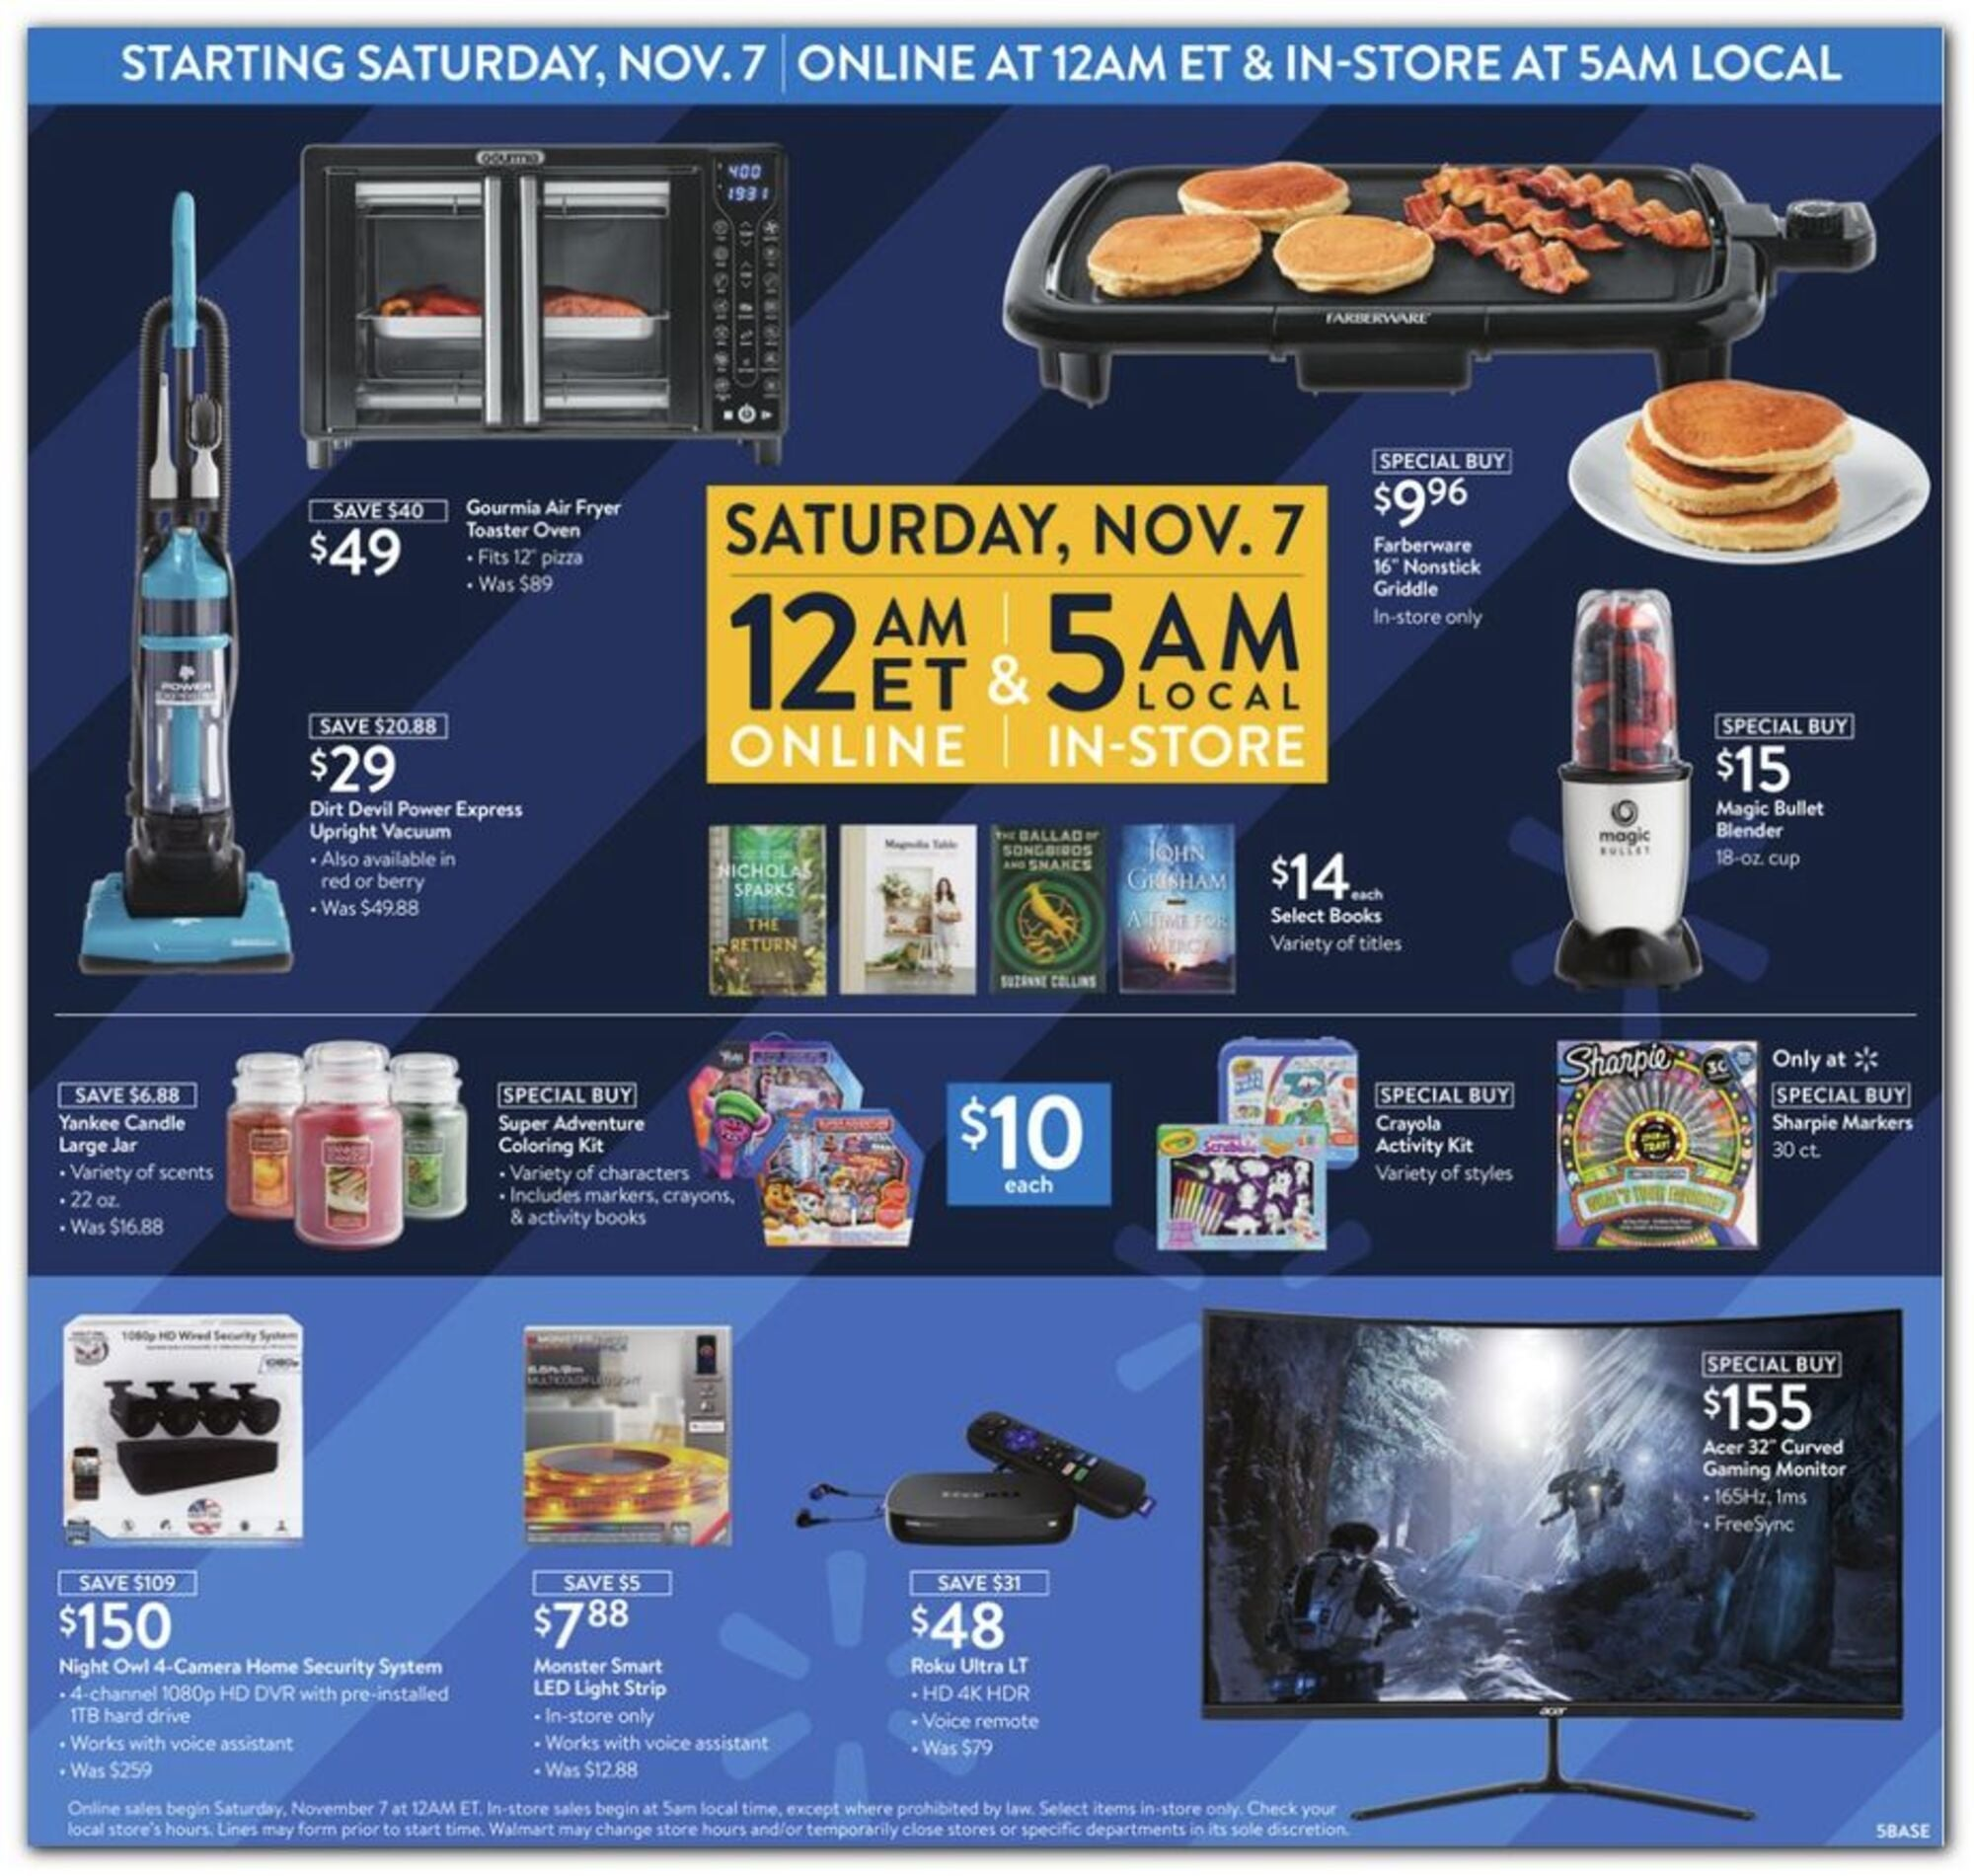 Makro Black Friday Deals 2020 Pdf Makro Black Friday 2019 Specials Unveiled